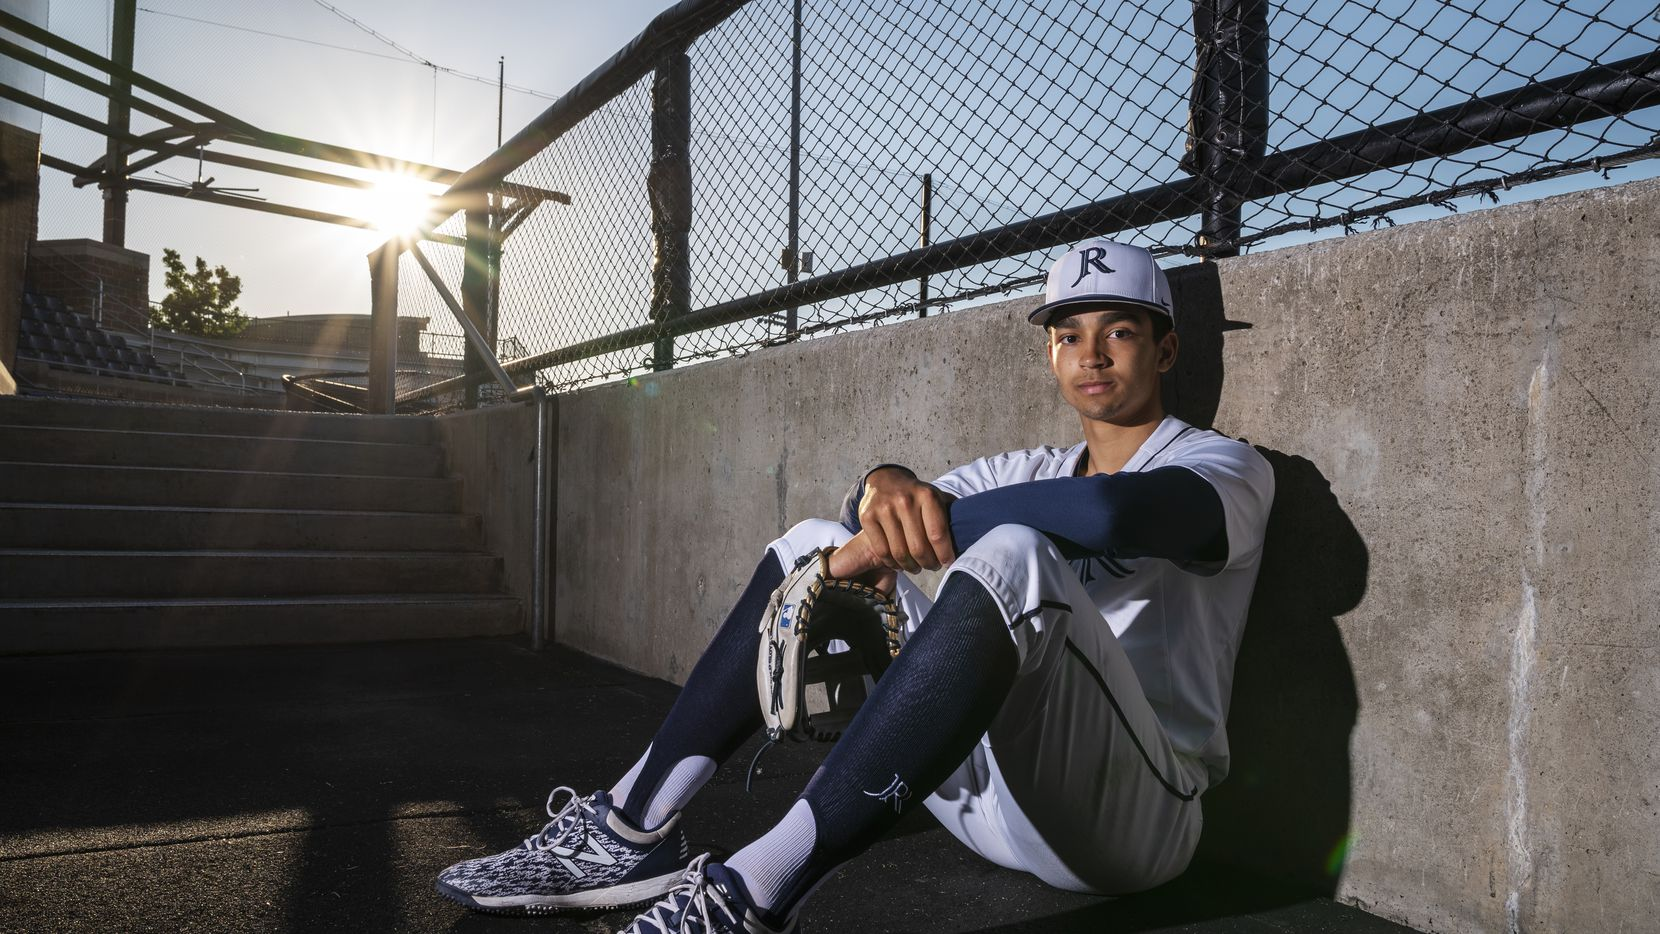 Jesuit senior shortstop Jordan Lawlar, 18, in the dugout of the Jesuit Rangers on the campus of Jesuit College Preparatory School of Dallas, on Tuesday, May 04, 2021.